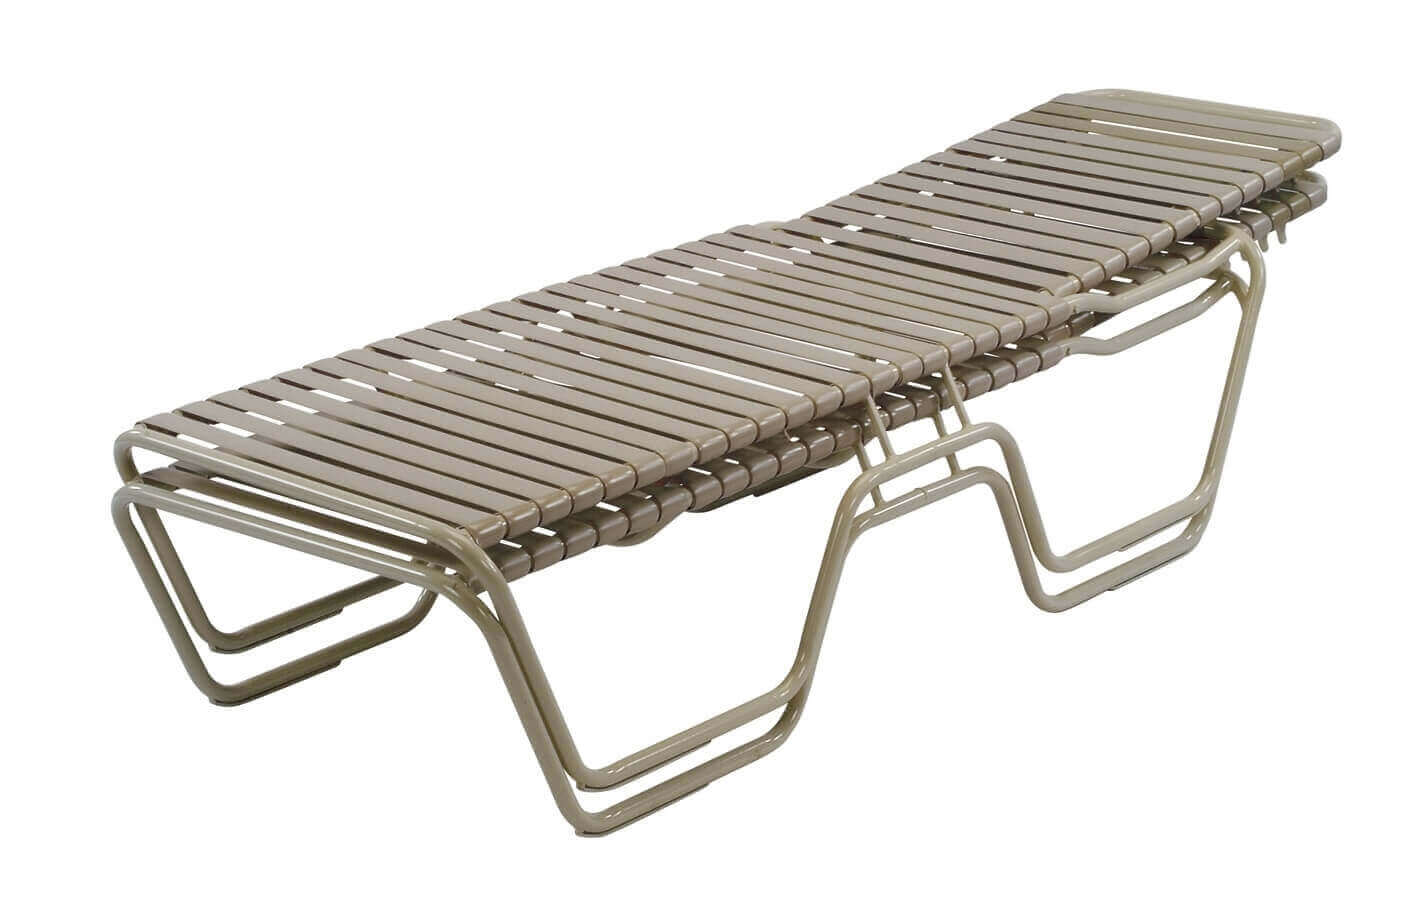 Commercial Pool Lounge Chairs St Maarten Vinyl Strap Chaise Lounge Commercial